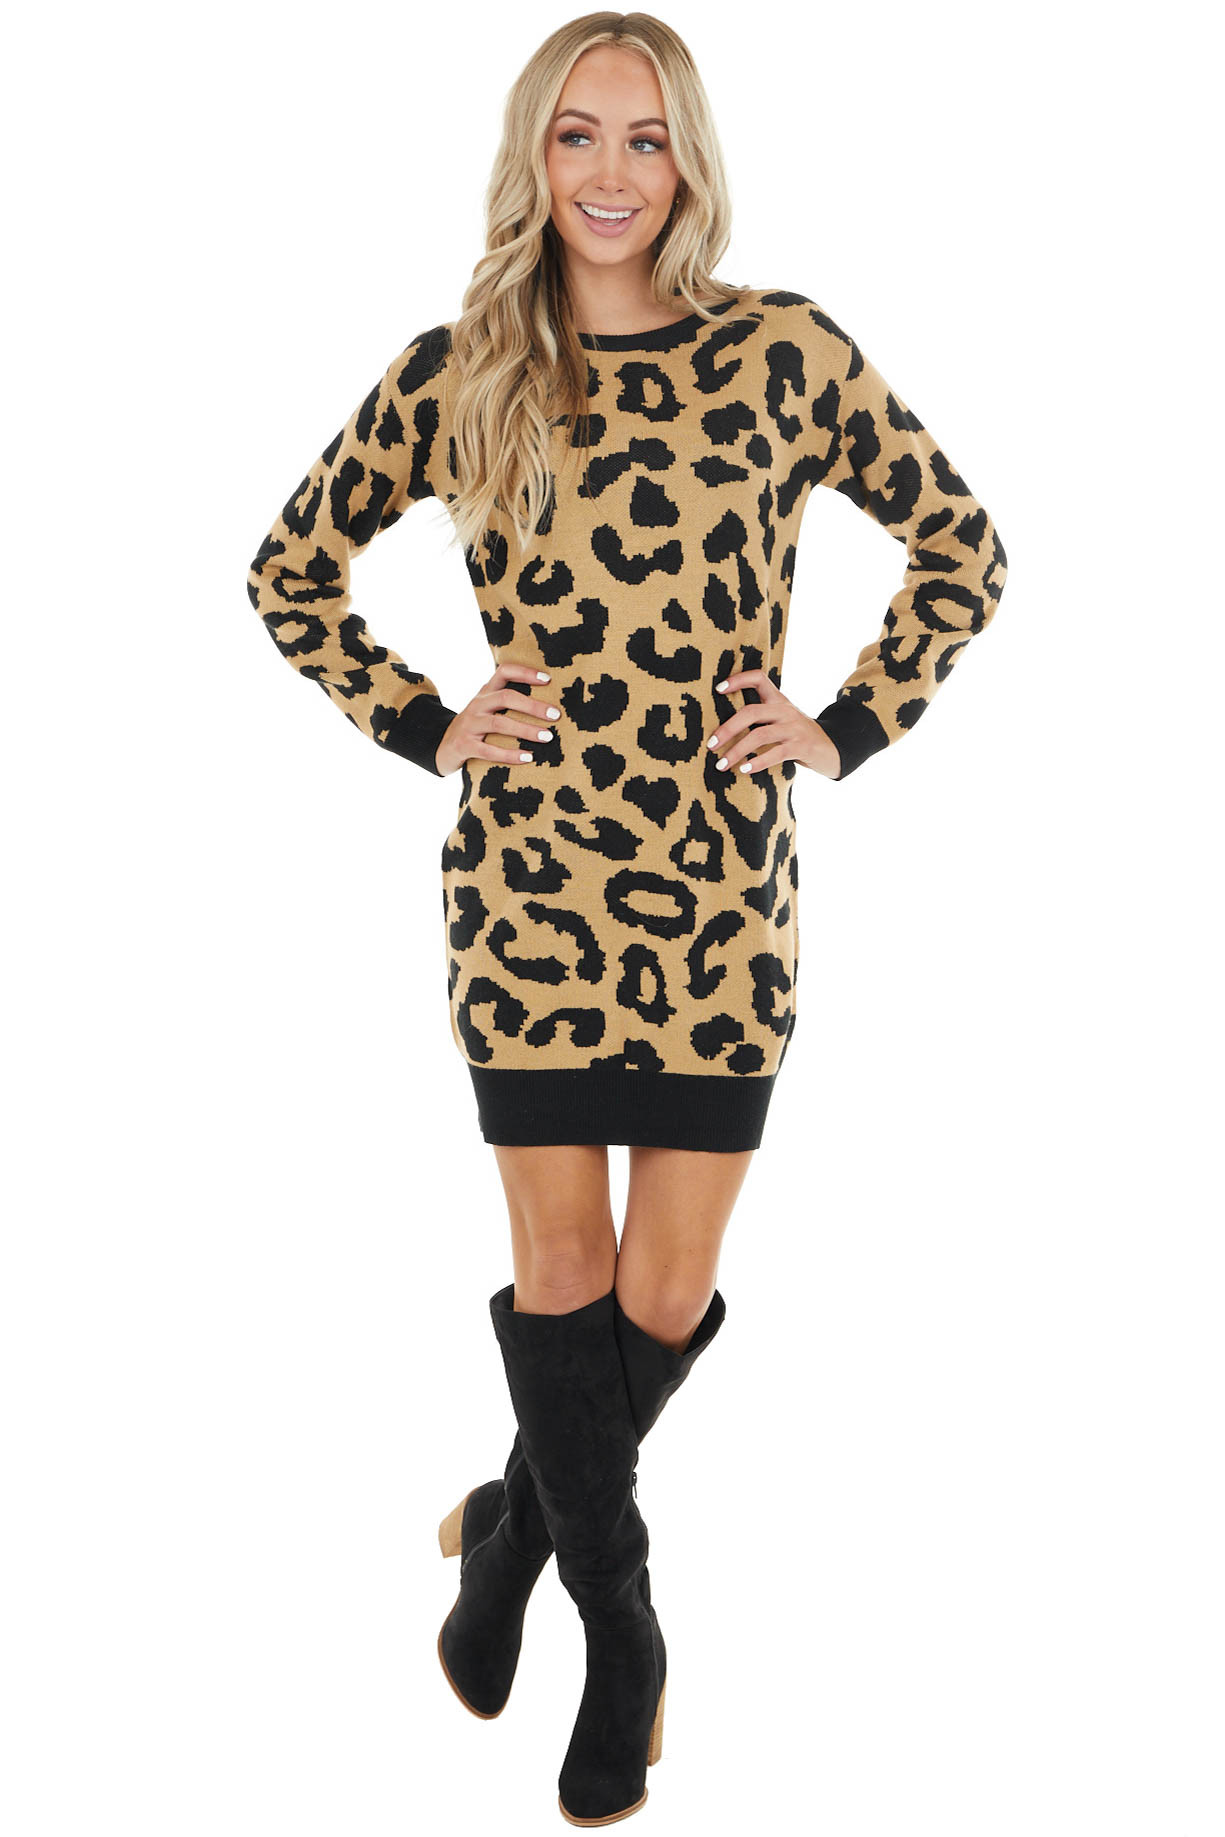 Beige Leopard Mini Knit Sweater Dress with Long Sleeves